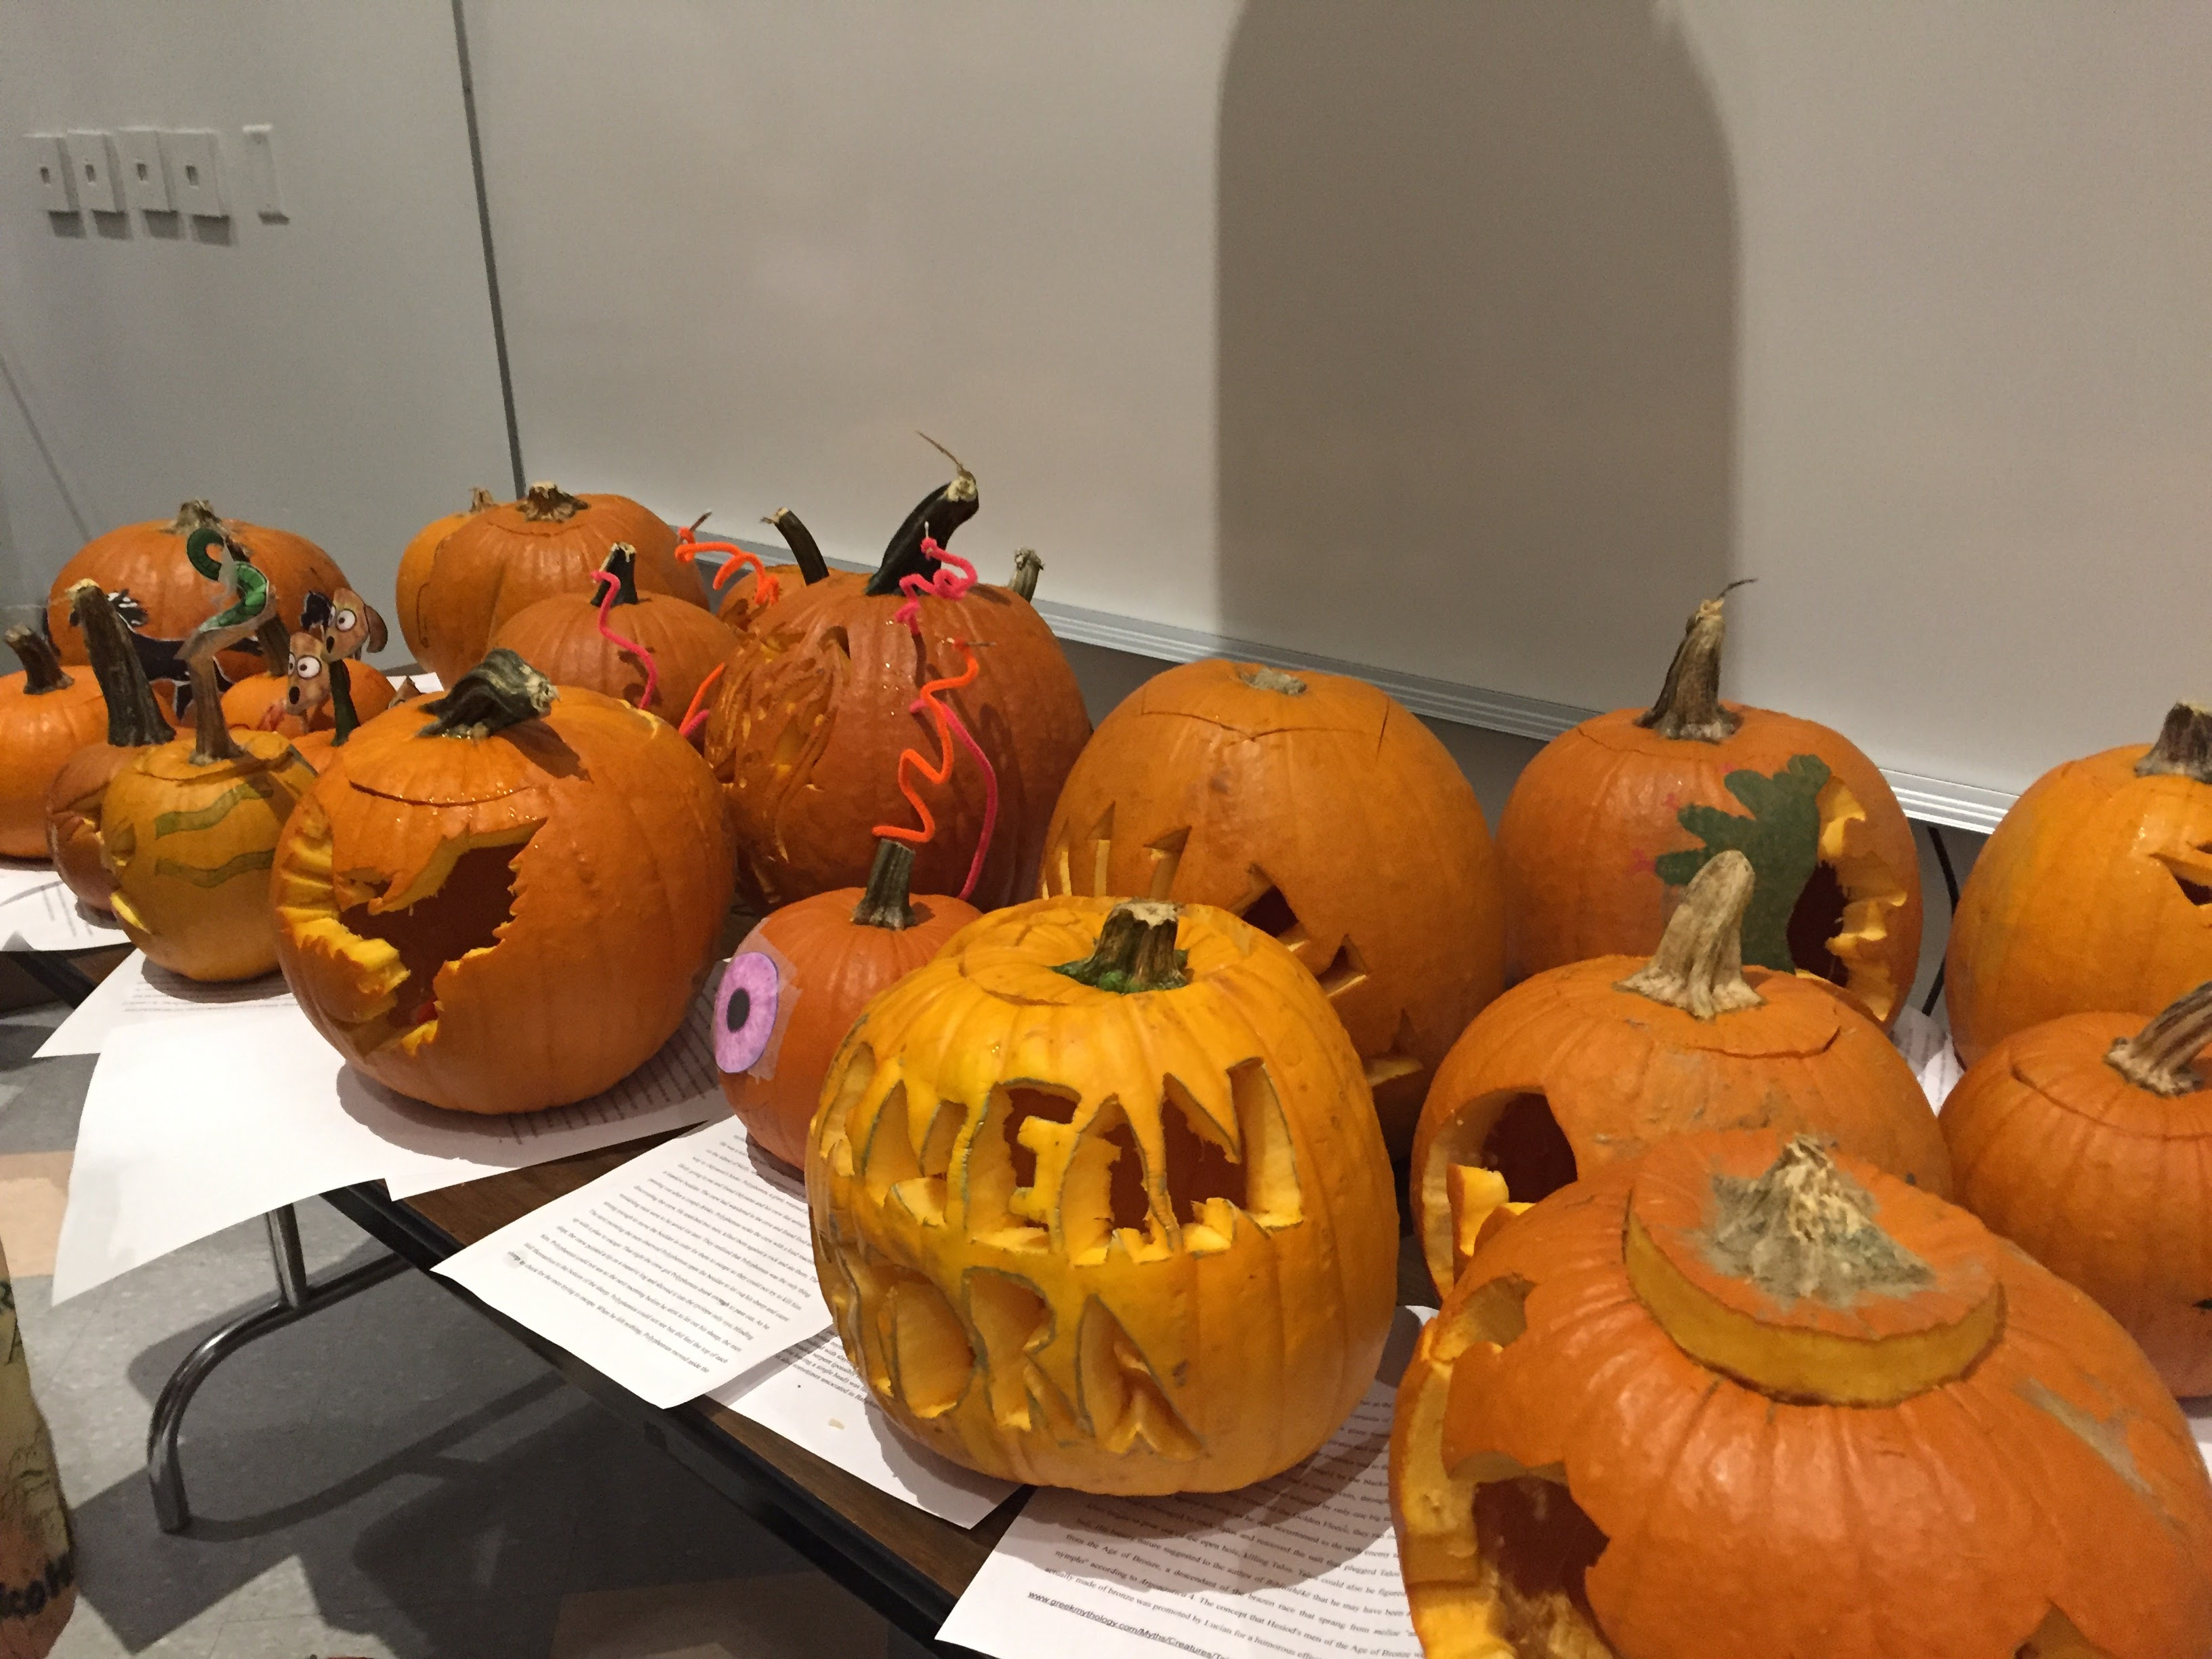 An array of artfully carved and painted pumpkins in the spirit of Halloween.